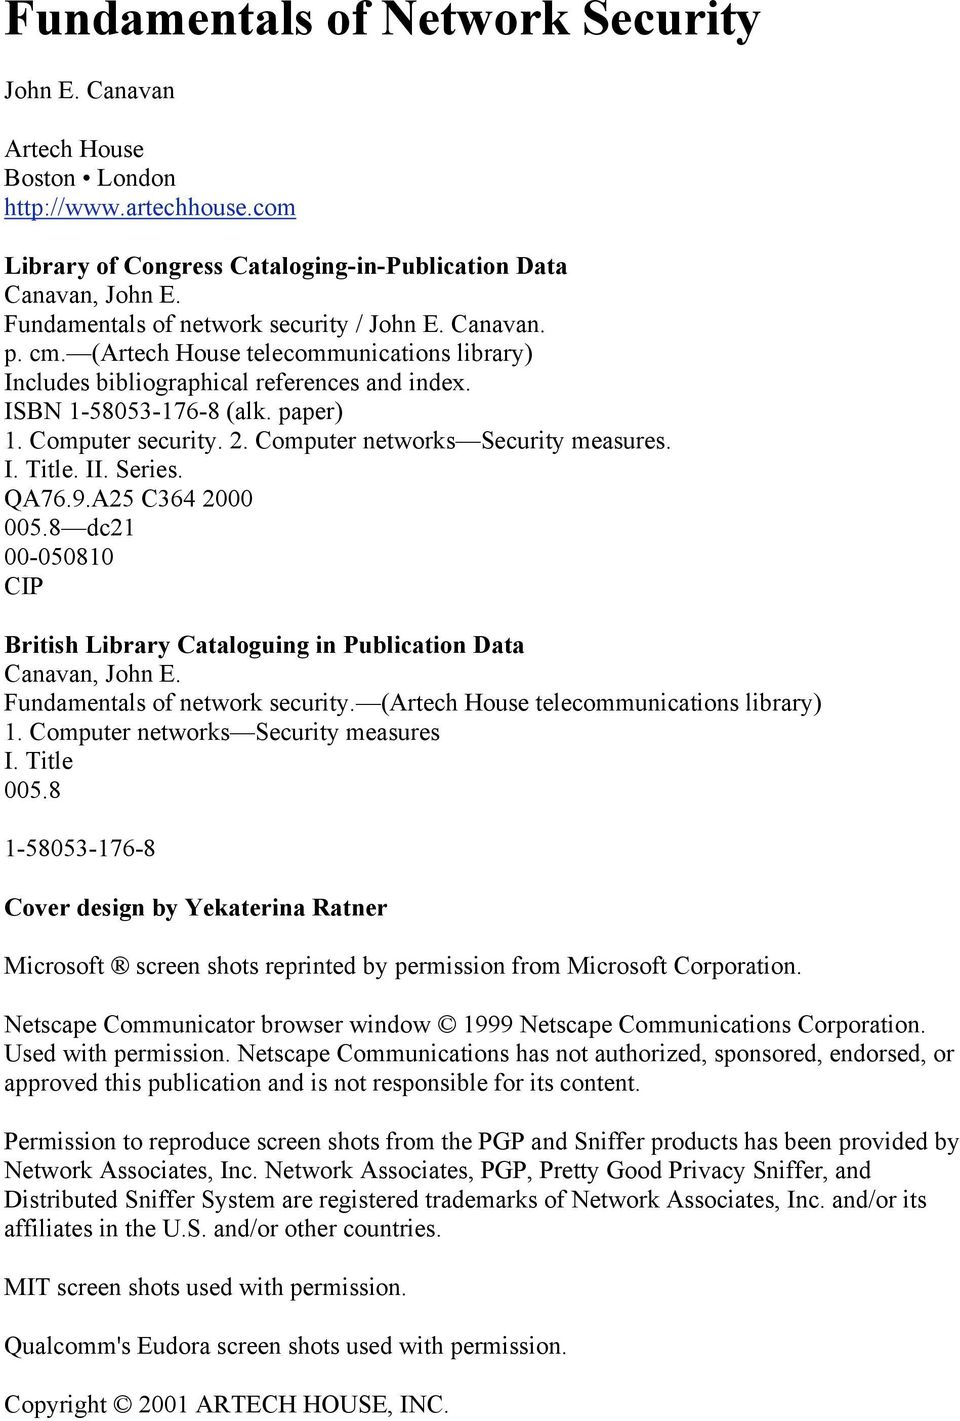 Computer security. 2. Computer networks Security measures. I. Title. II. Series. QA76.9.A25 C364 2000 005.8 dc21 00-050810 CIP British Library Cataloguing in Publication Data Canavan, John E.